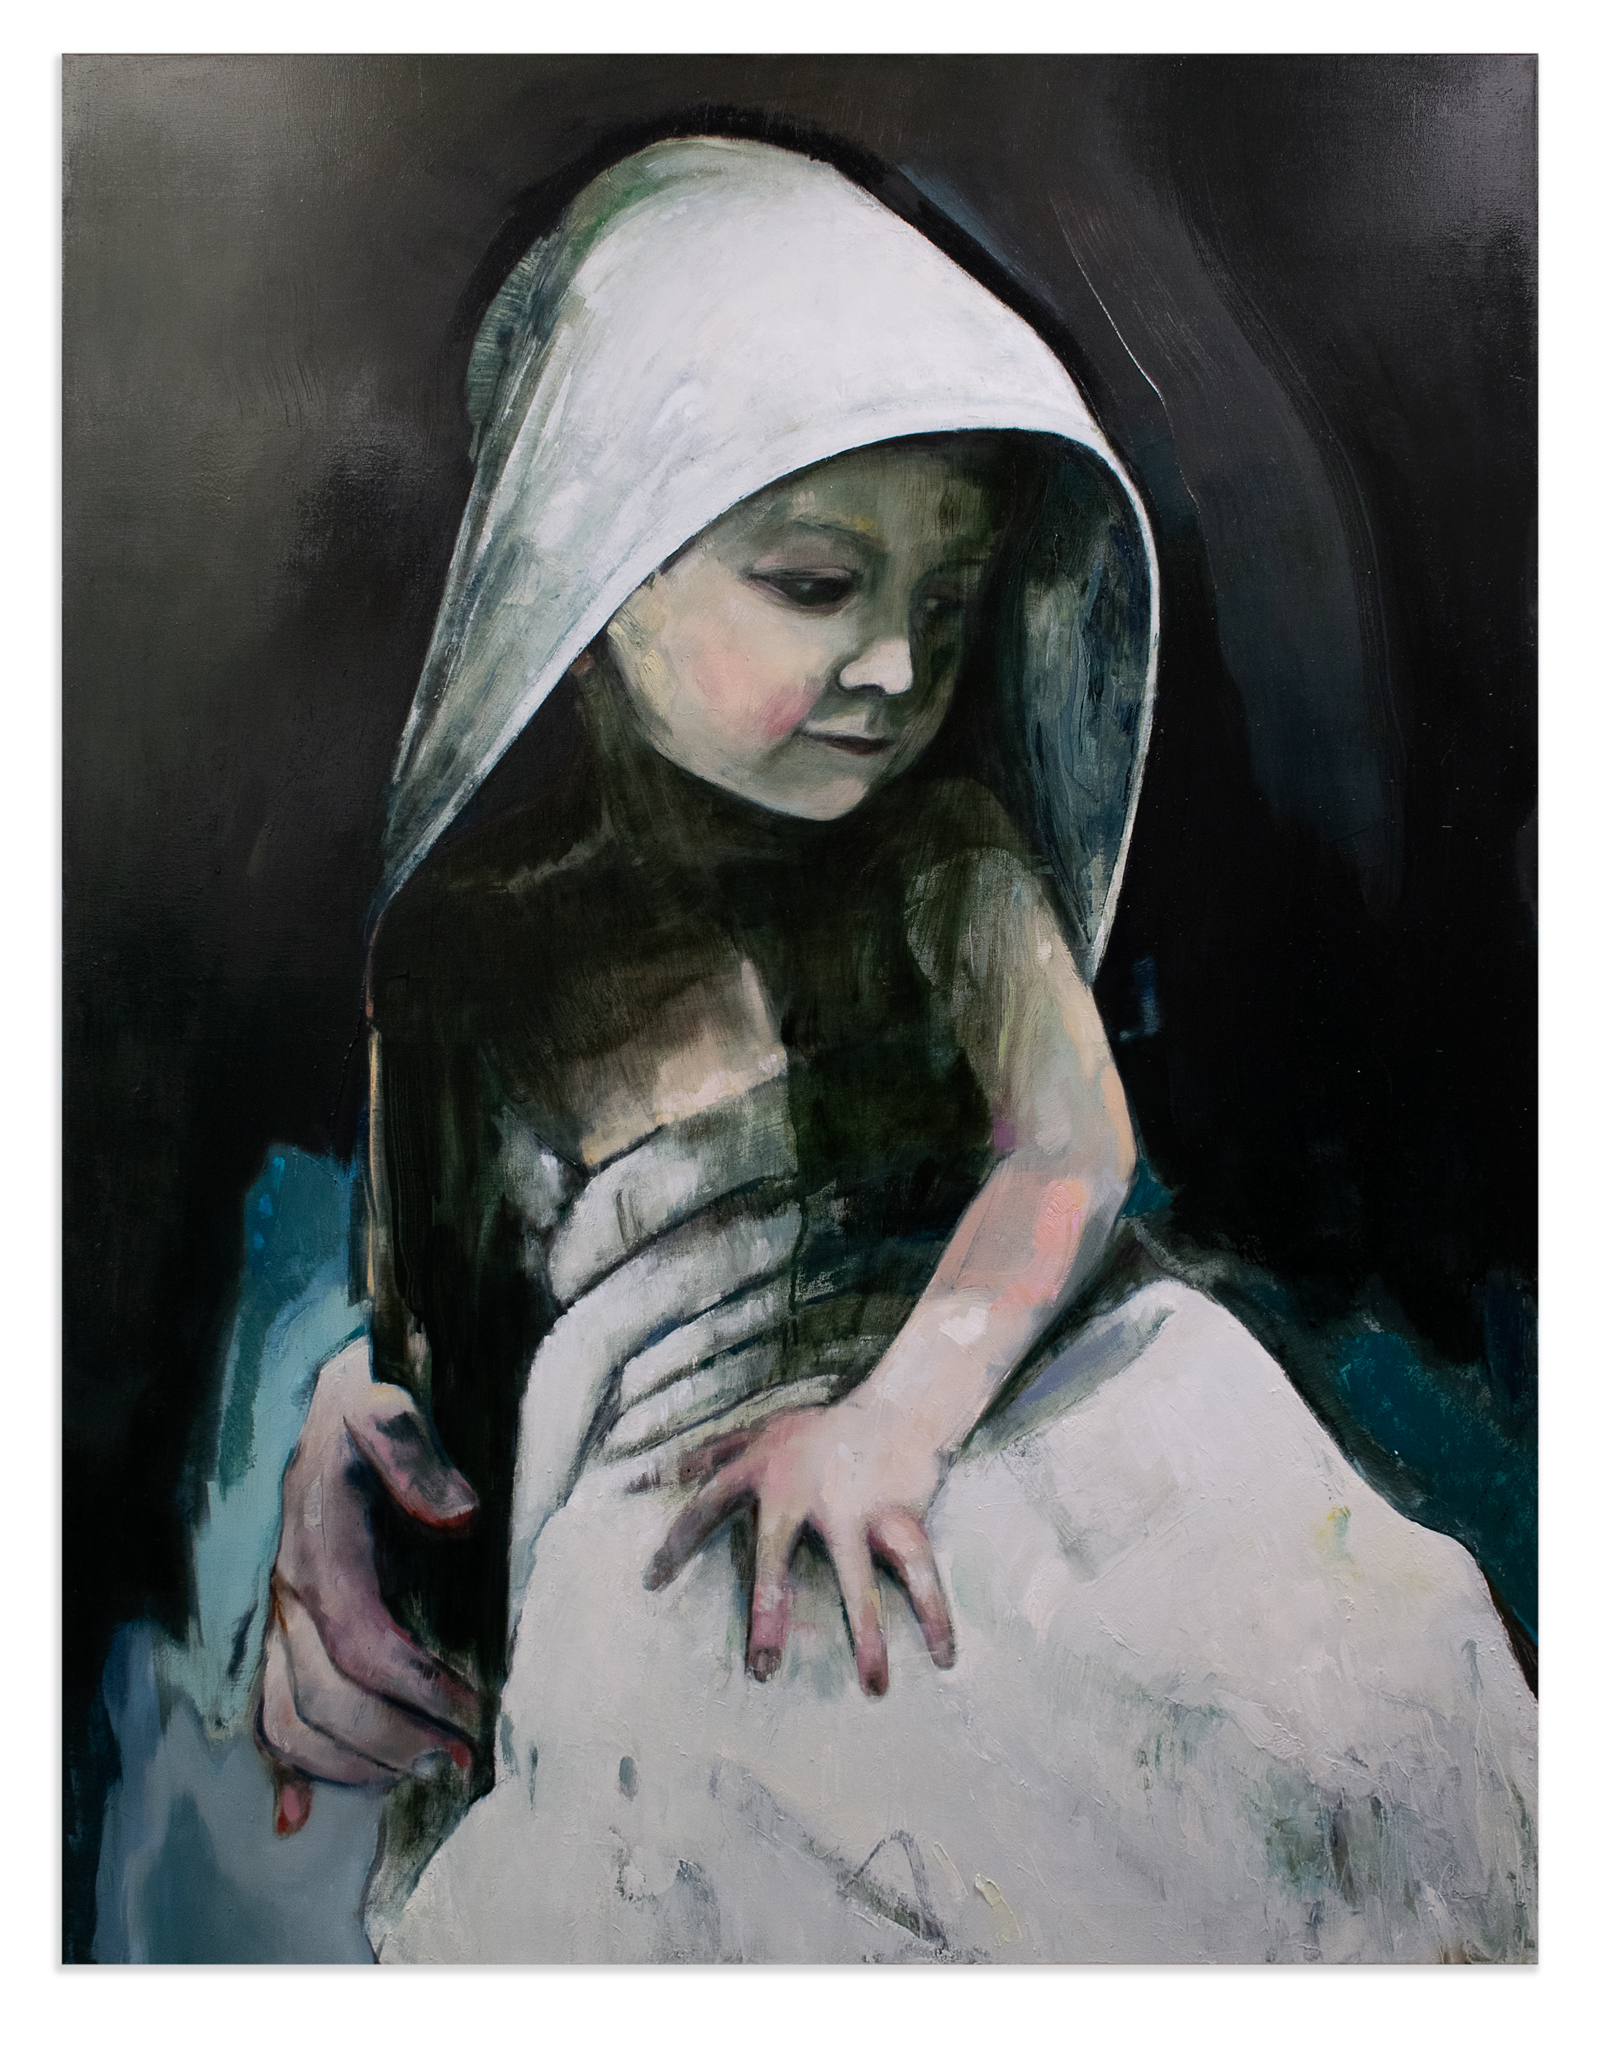 paintings, expressive, family-friendly, figurative, portraiture, bodies, children, everyday life, moods, people, textiles, beige, black, blue, white, acrylic, charcoal, cotton-canvas, oil, baby, beautiful, black-and-white, boys, contemporary-art, copenhagen, danish, dark, faces, interior, interior-design, kids, love, modern-art, nordic, scandinavien, vivid, Buy original high quality art. Paintings, drawings, limited edition prints & posters by talented artists.